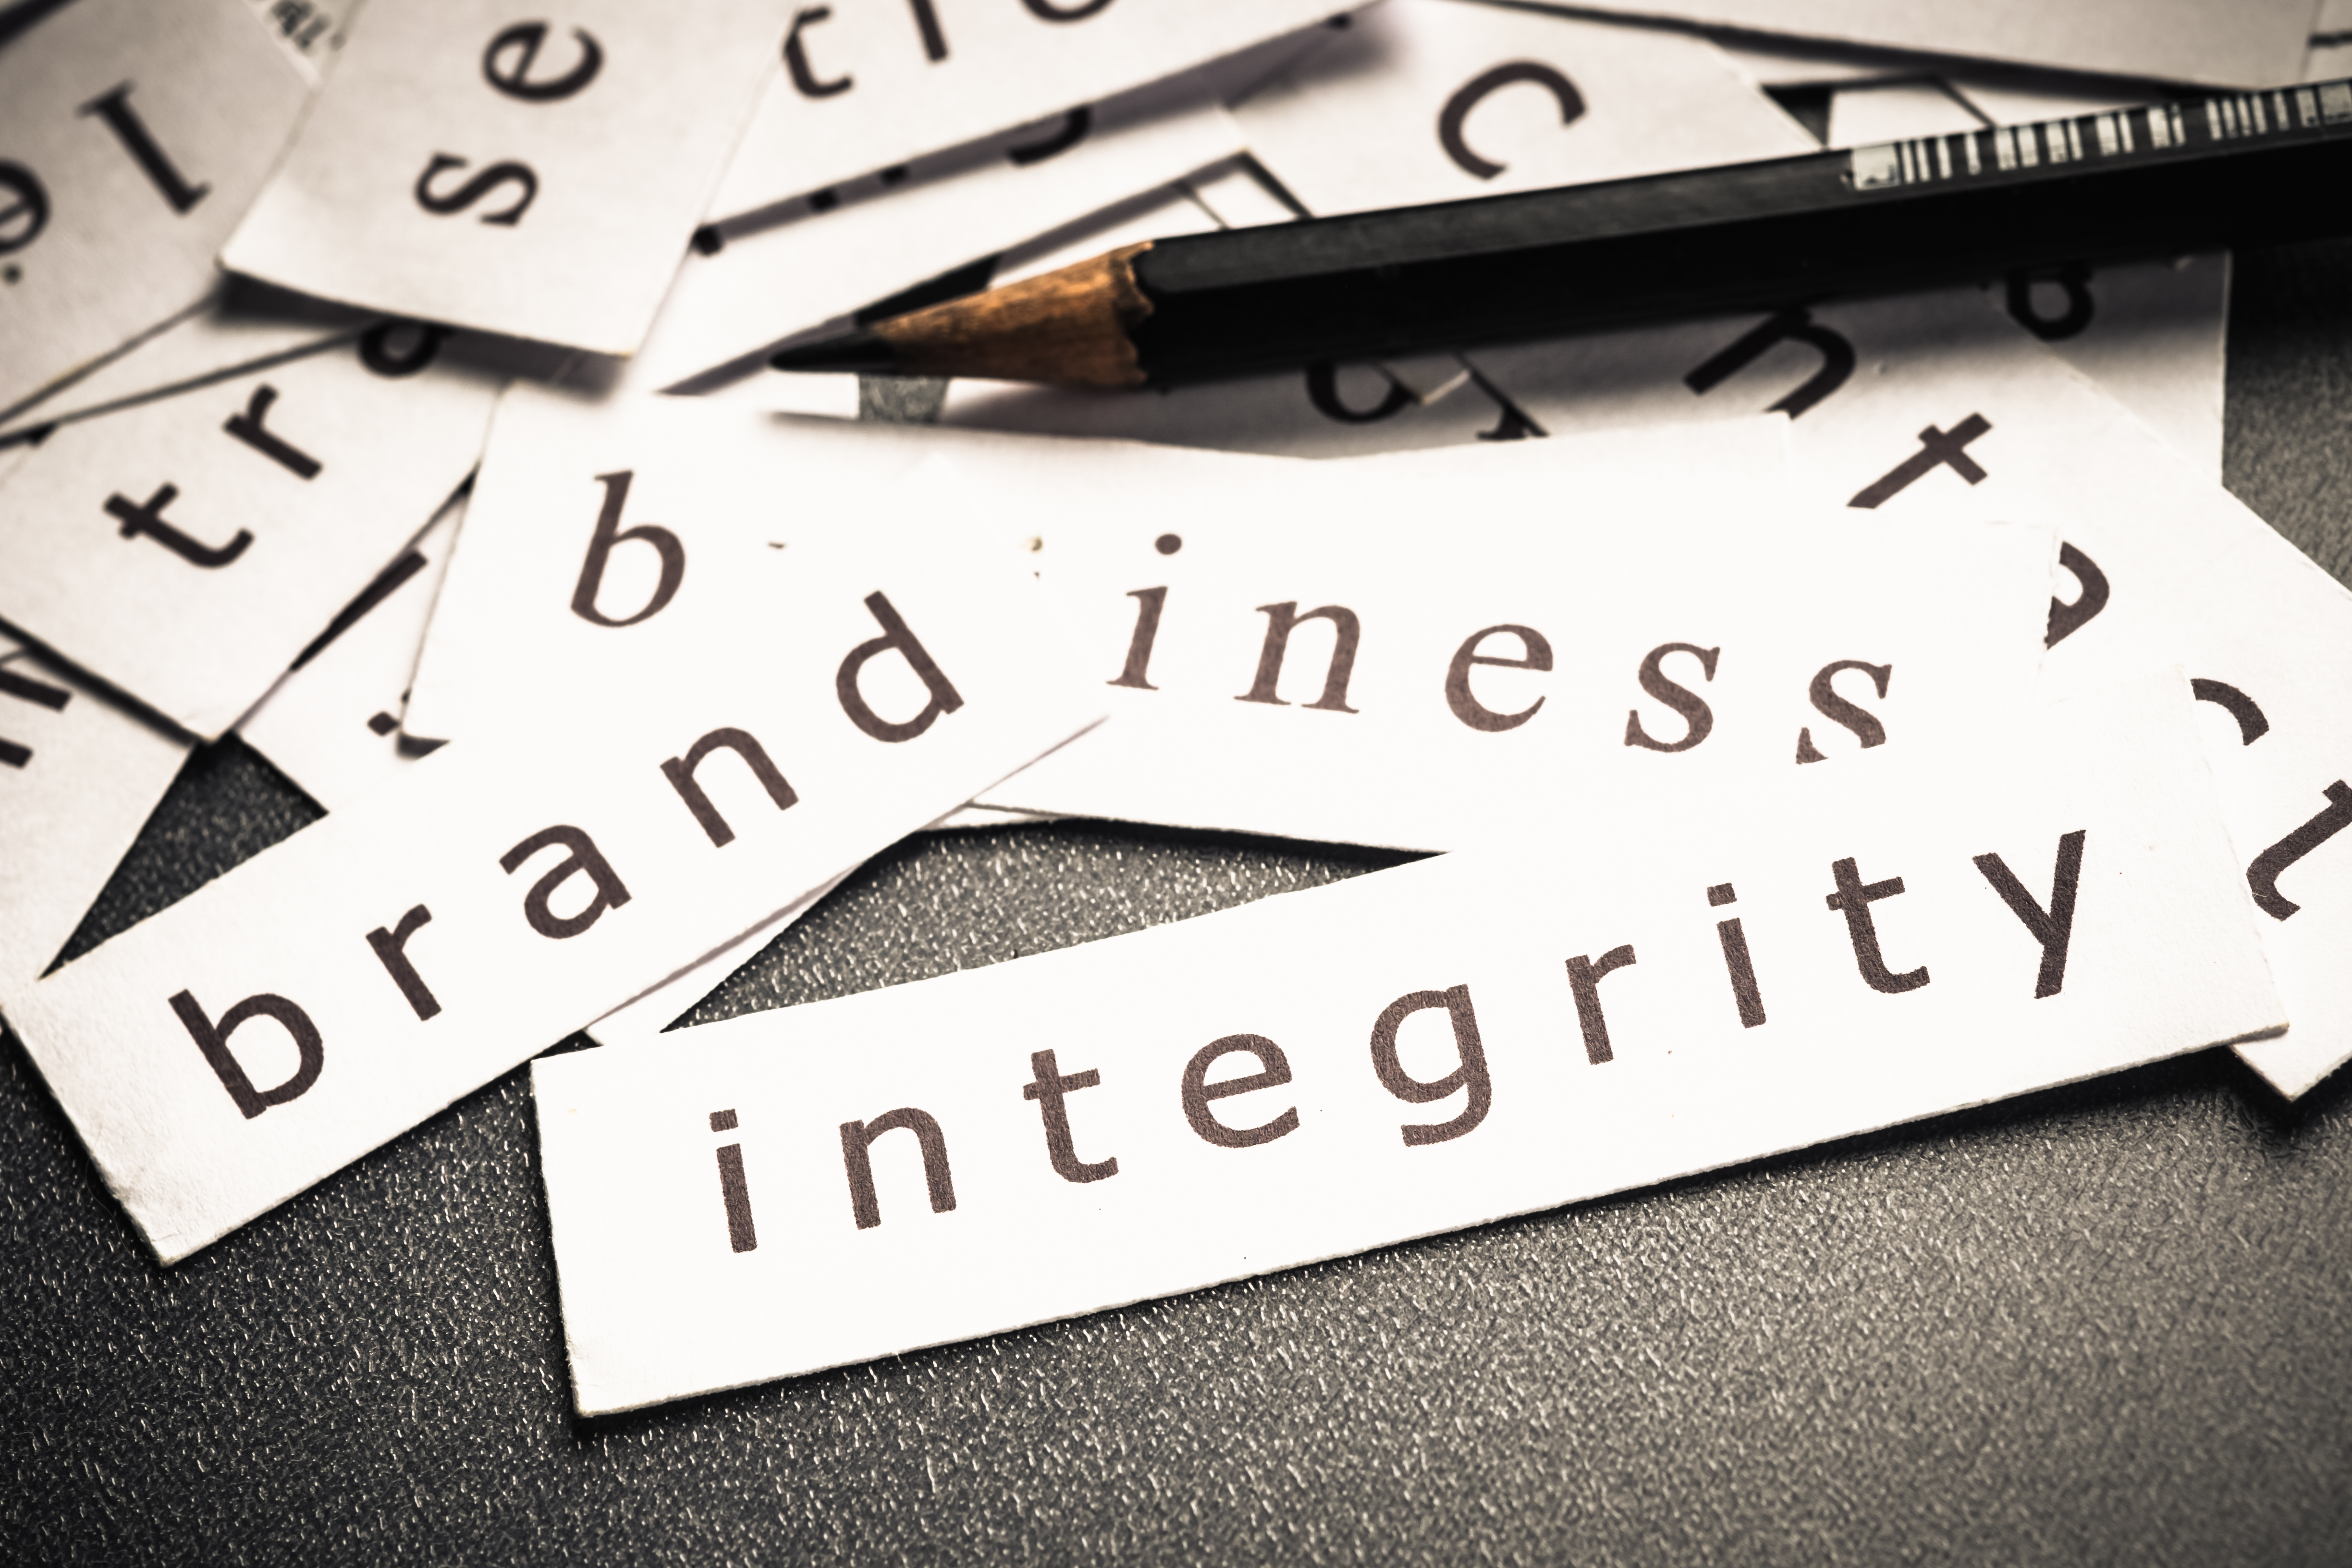 Brand ethics and purpose are key buying motivations for today's consumers